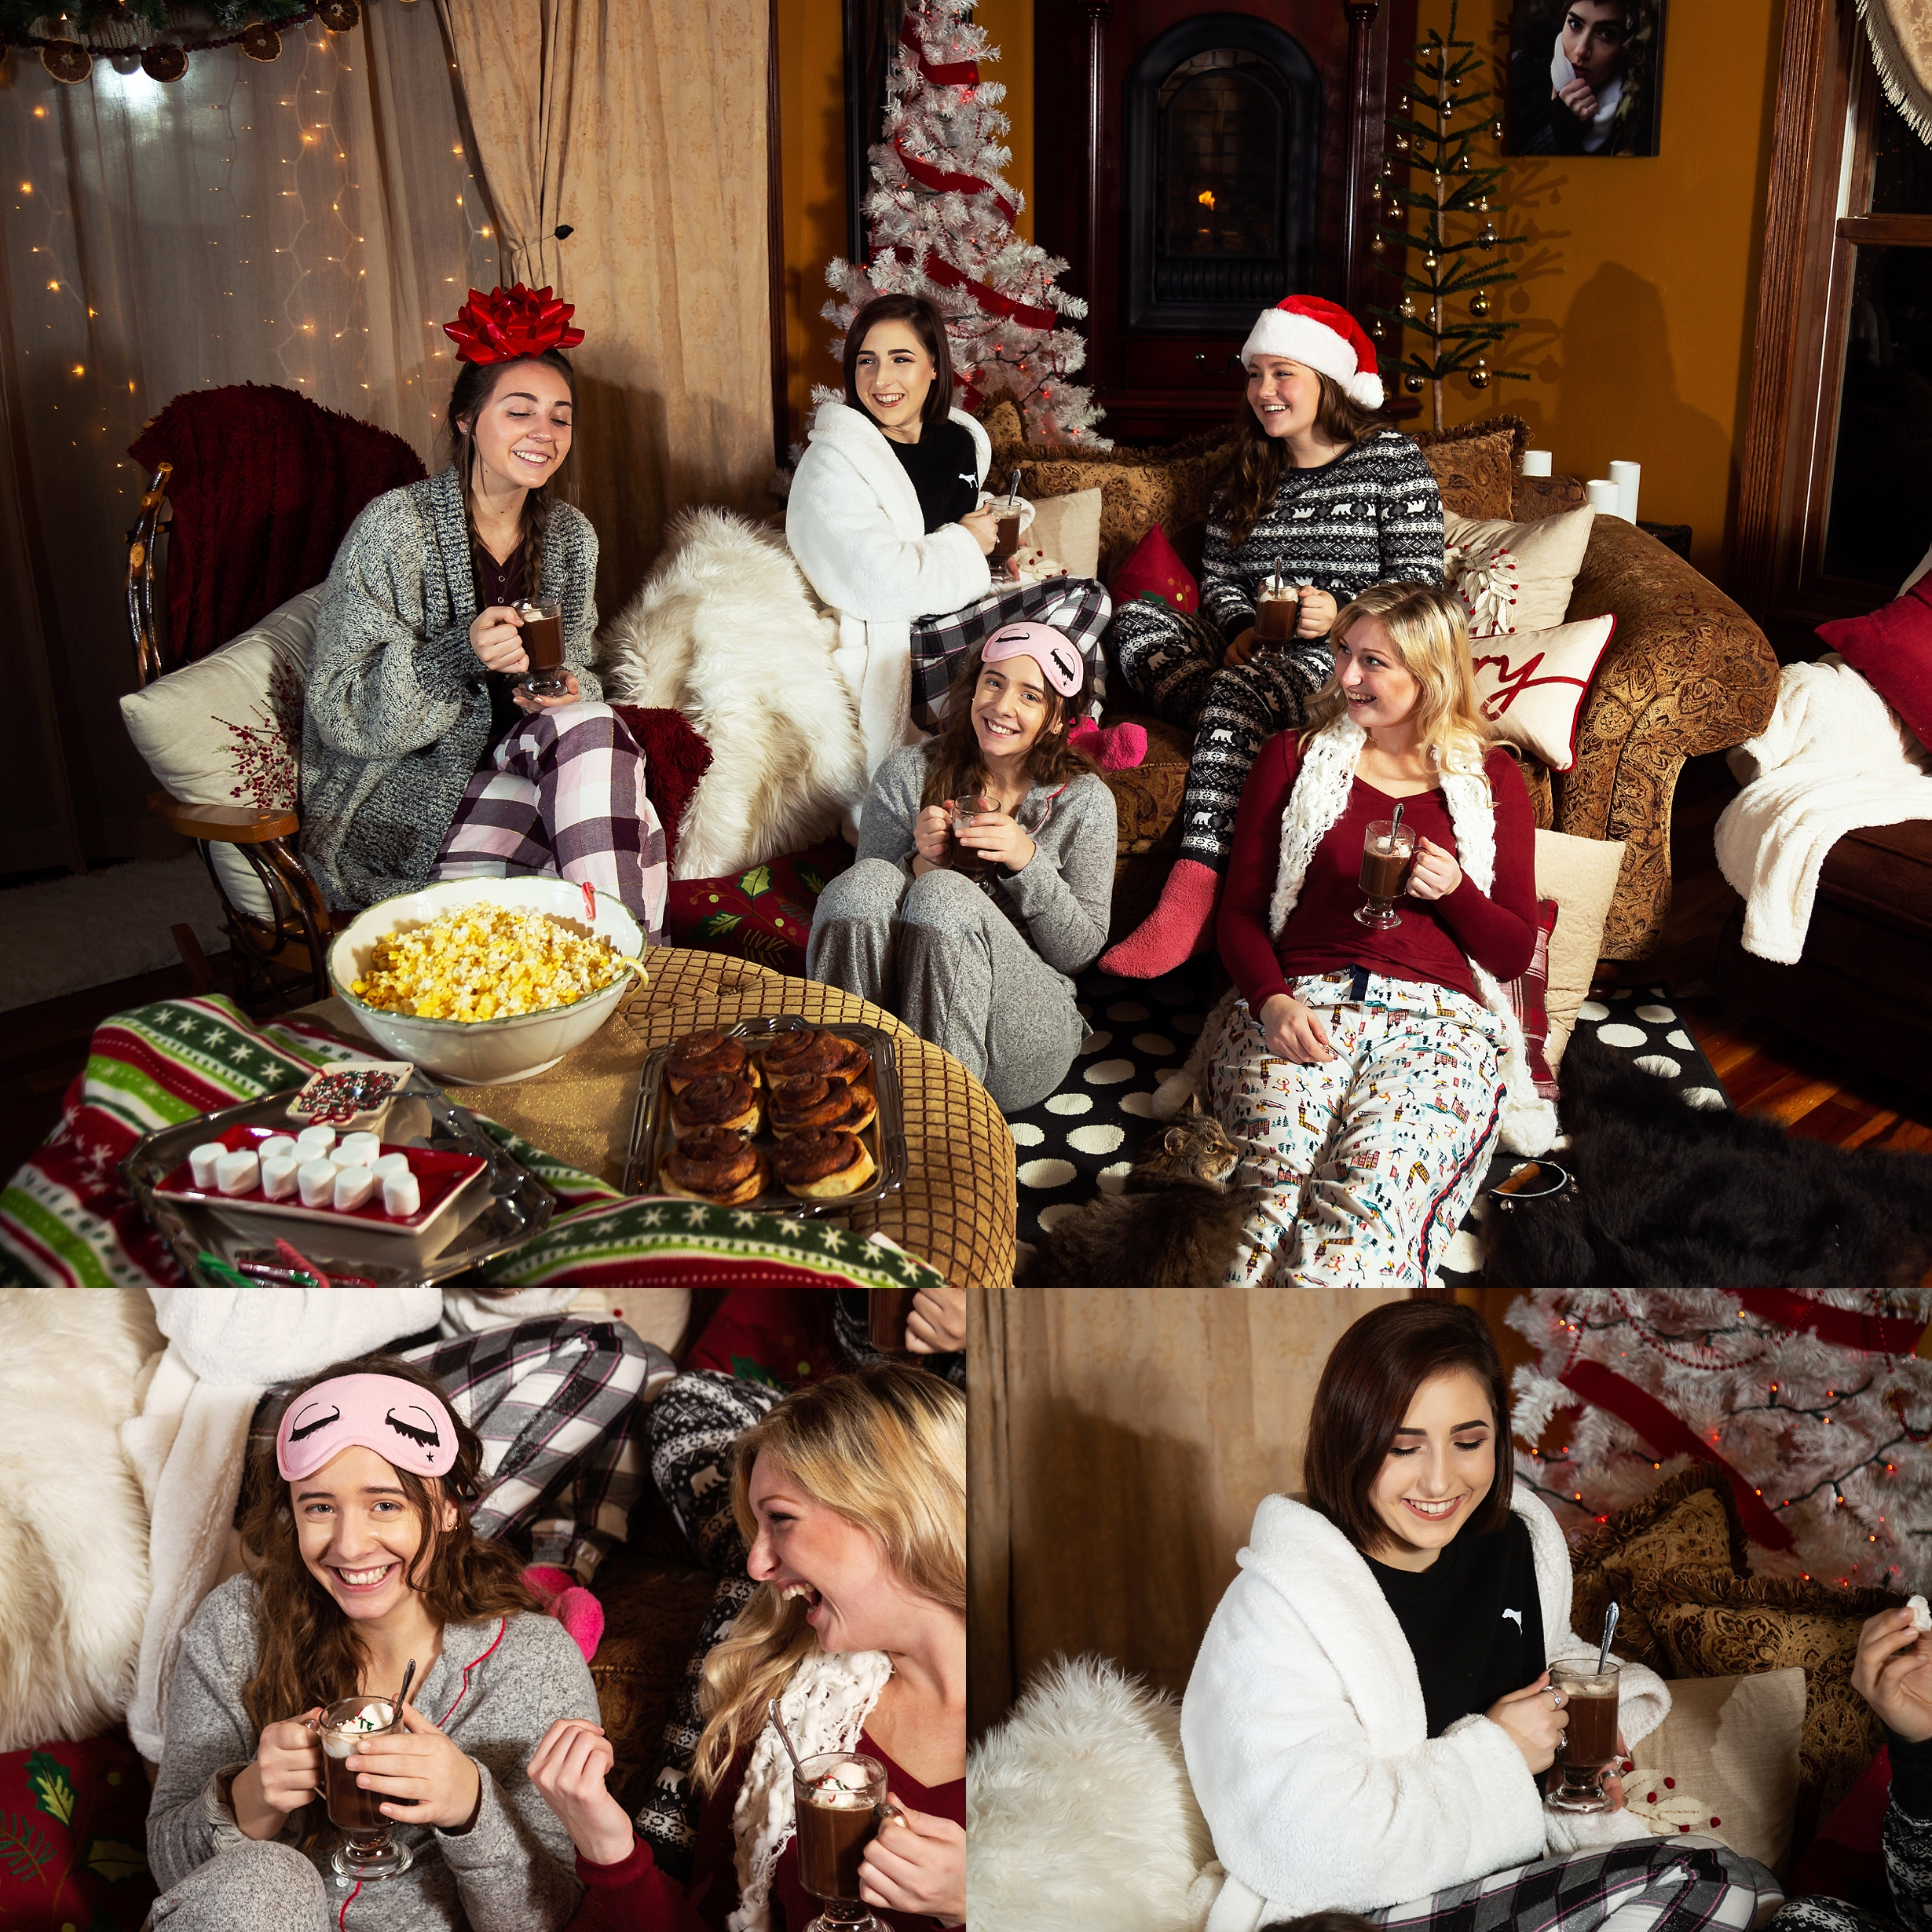 2019 VIP Representatives Christmas Party Group Pajama Photoshoot